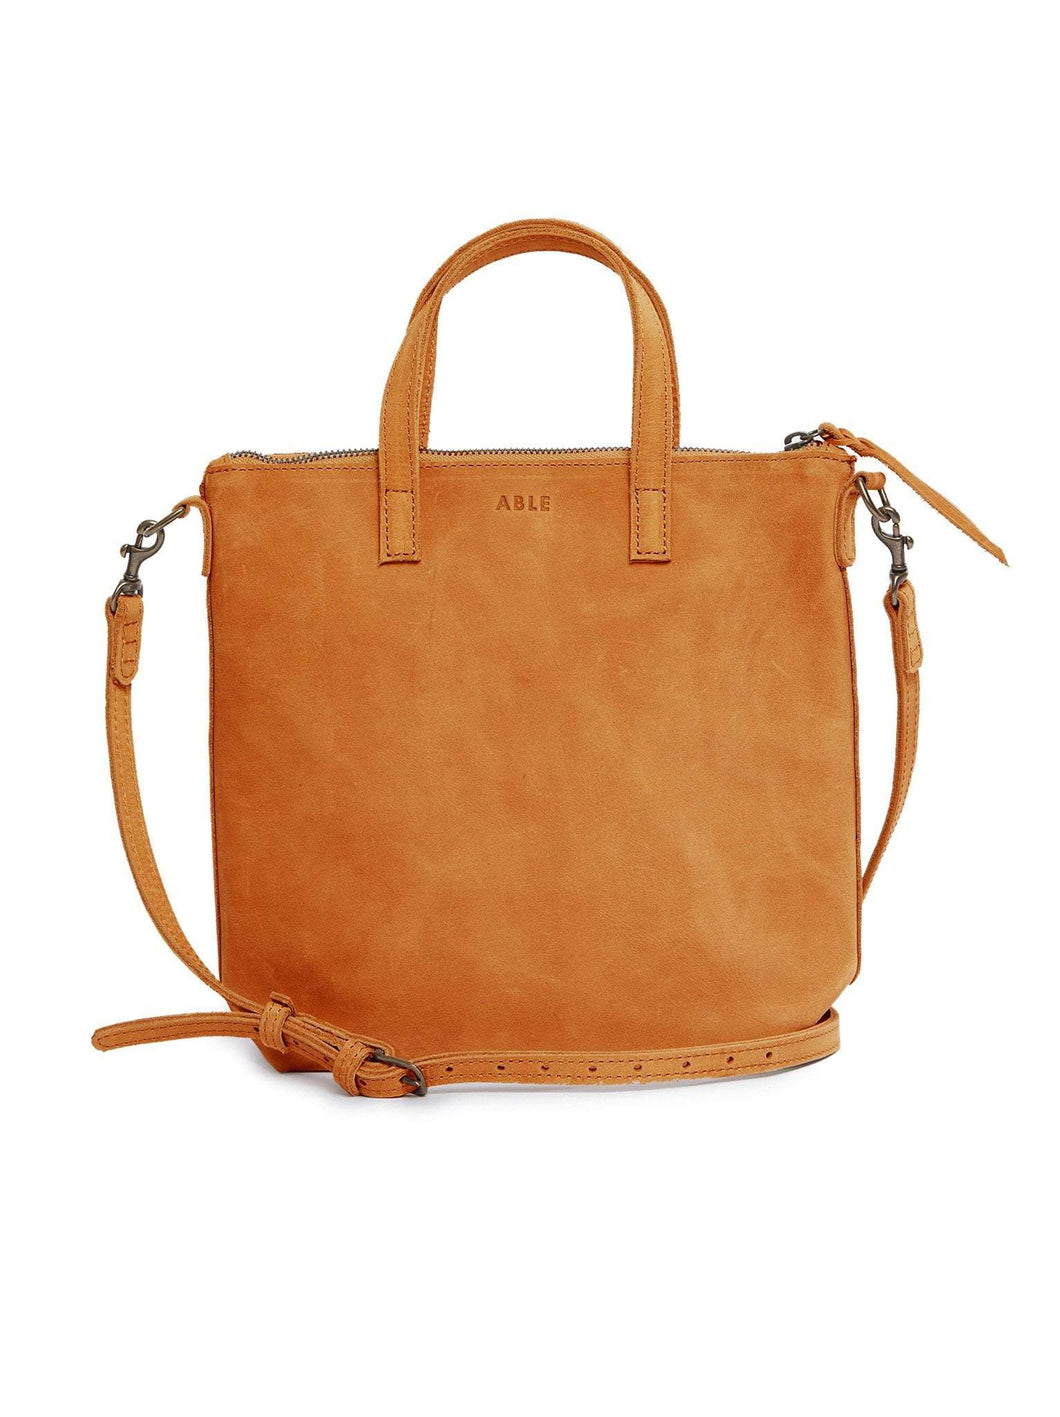 fashionable cross body zip closure cognac bag purse long and short strap